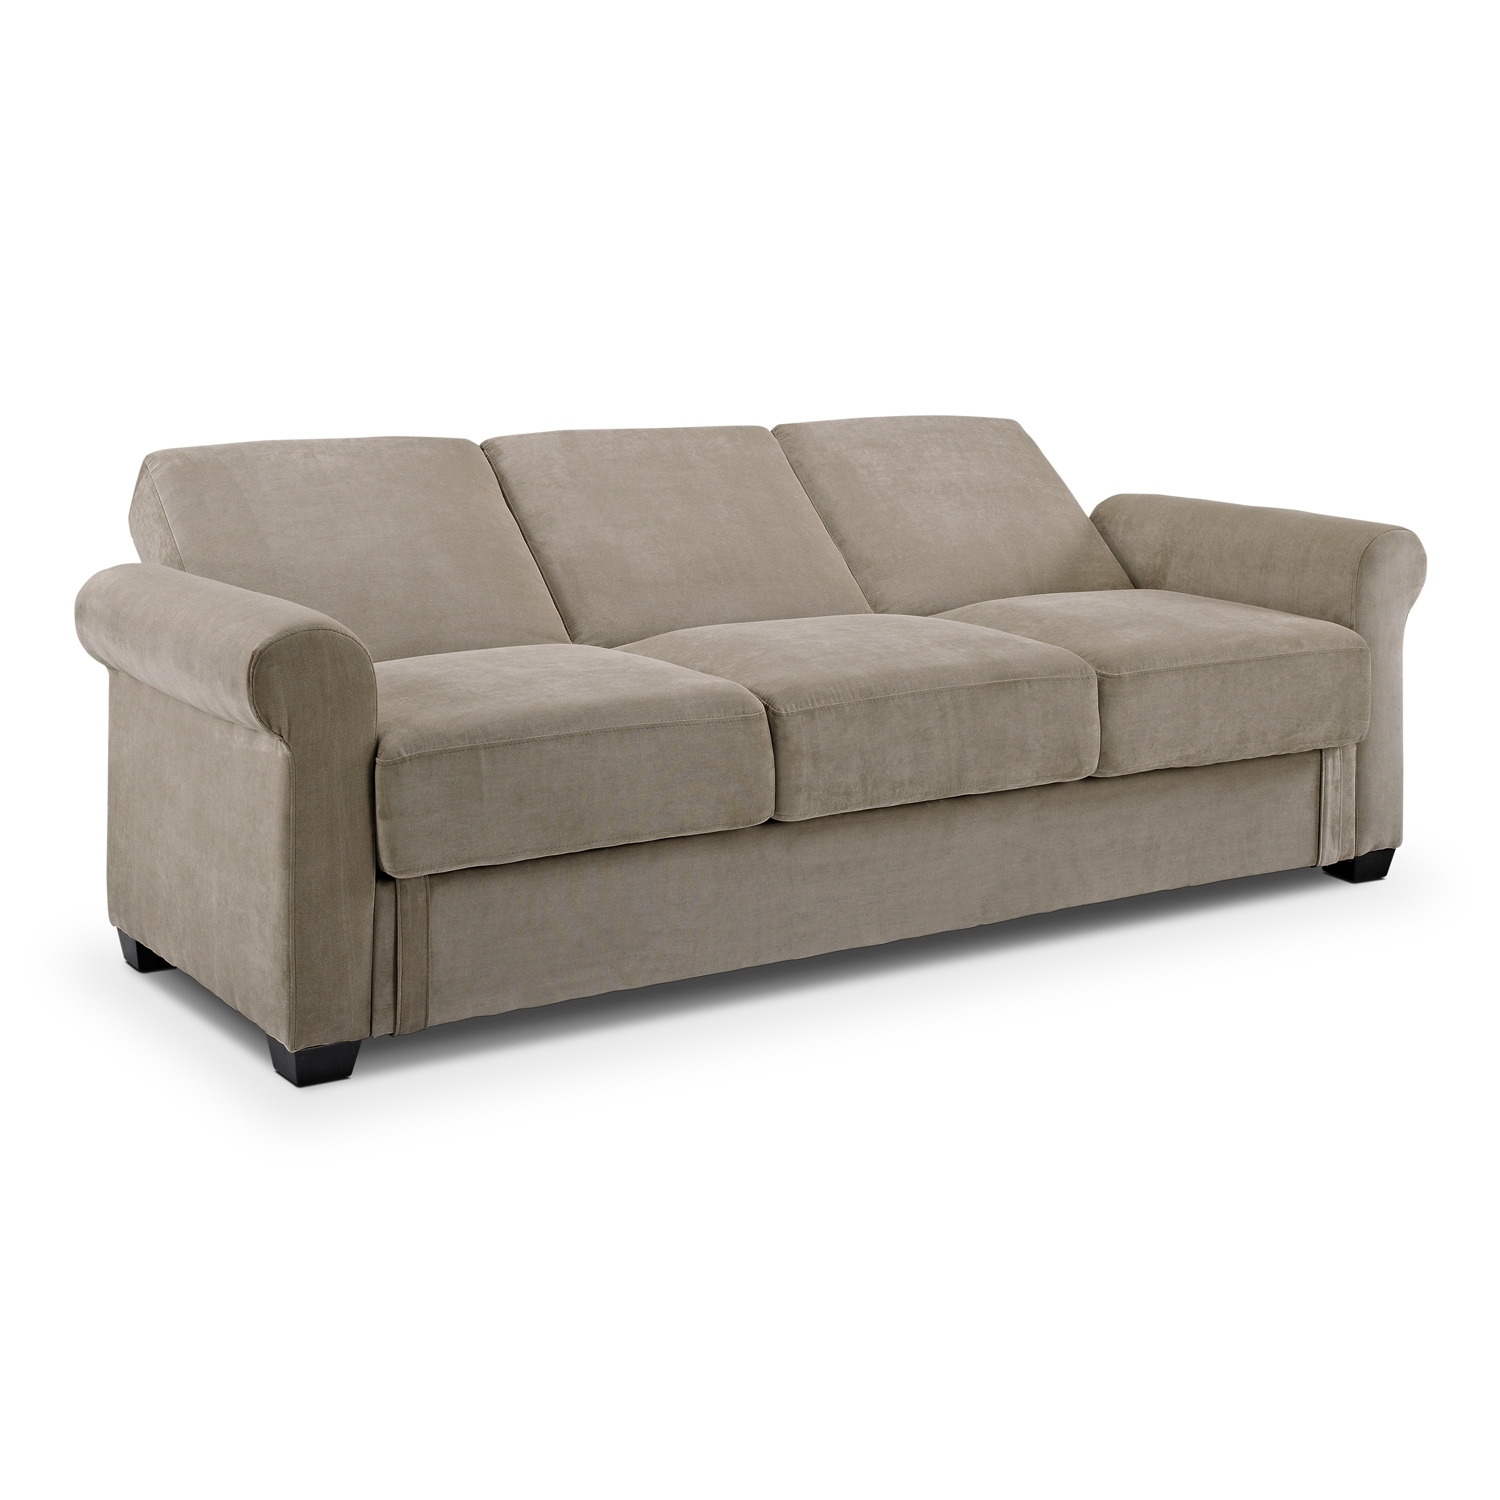 Thomas Futon Sofa Bed with Storage Light Brown